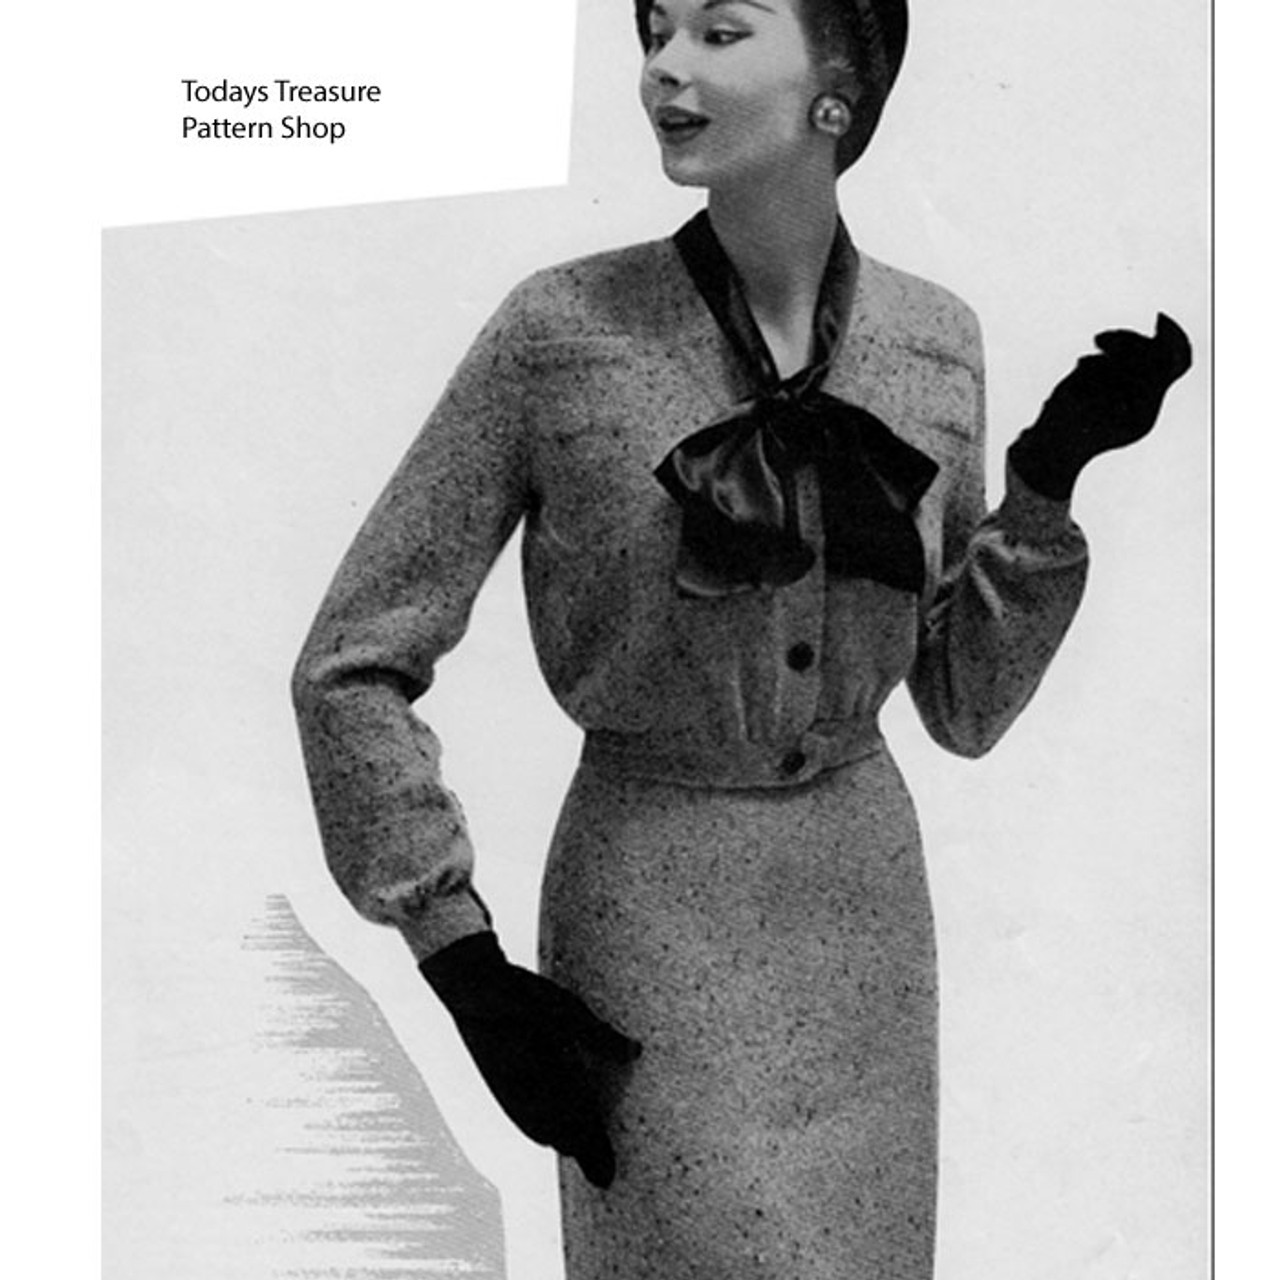 Two Piece Knitted Suit Pattern, Vintage 1940s